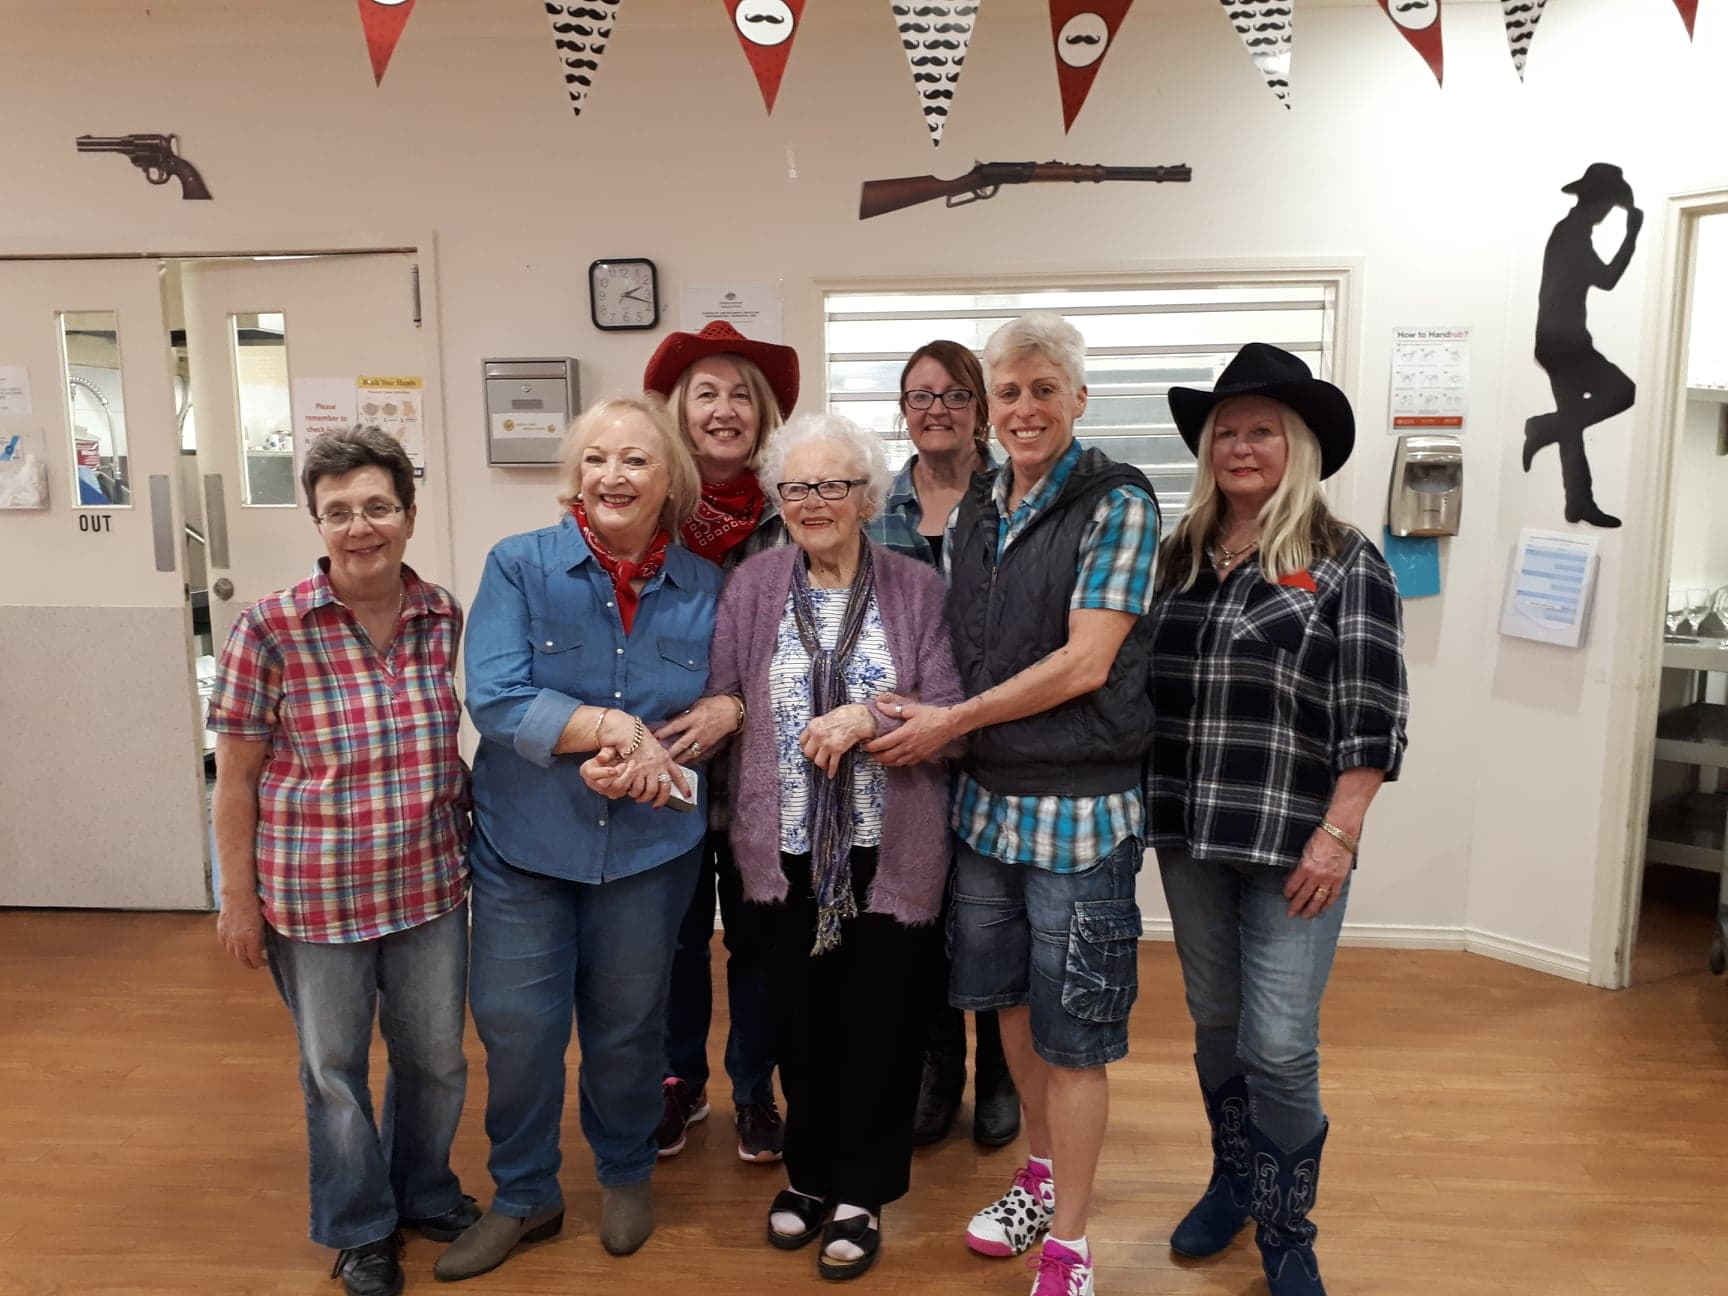 Dot 95 retired from dancing aged 87